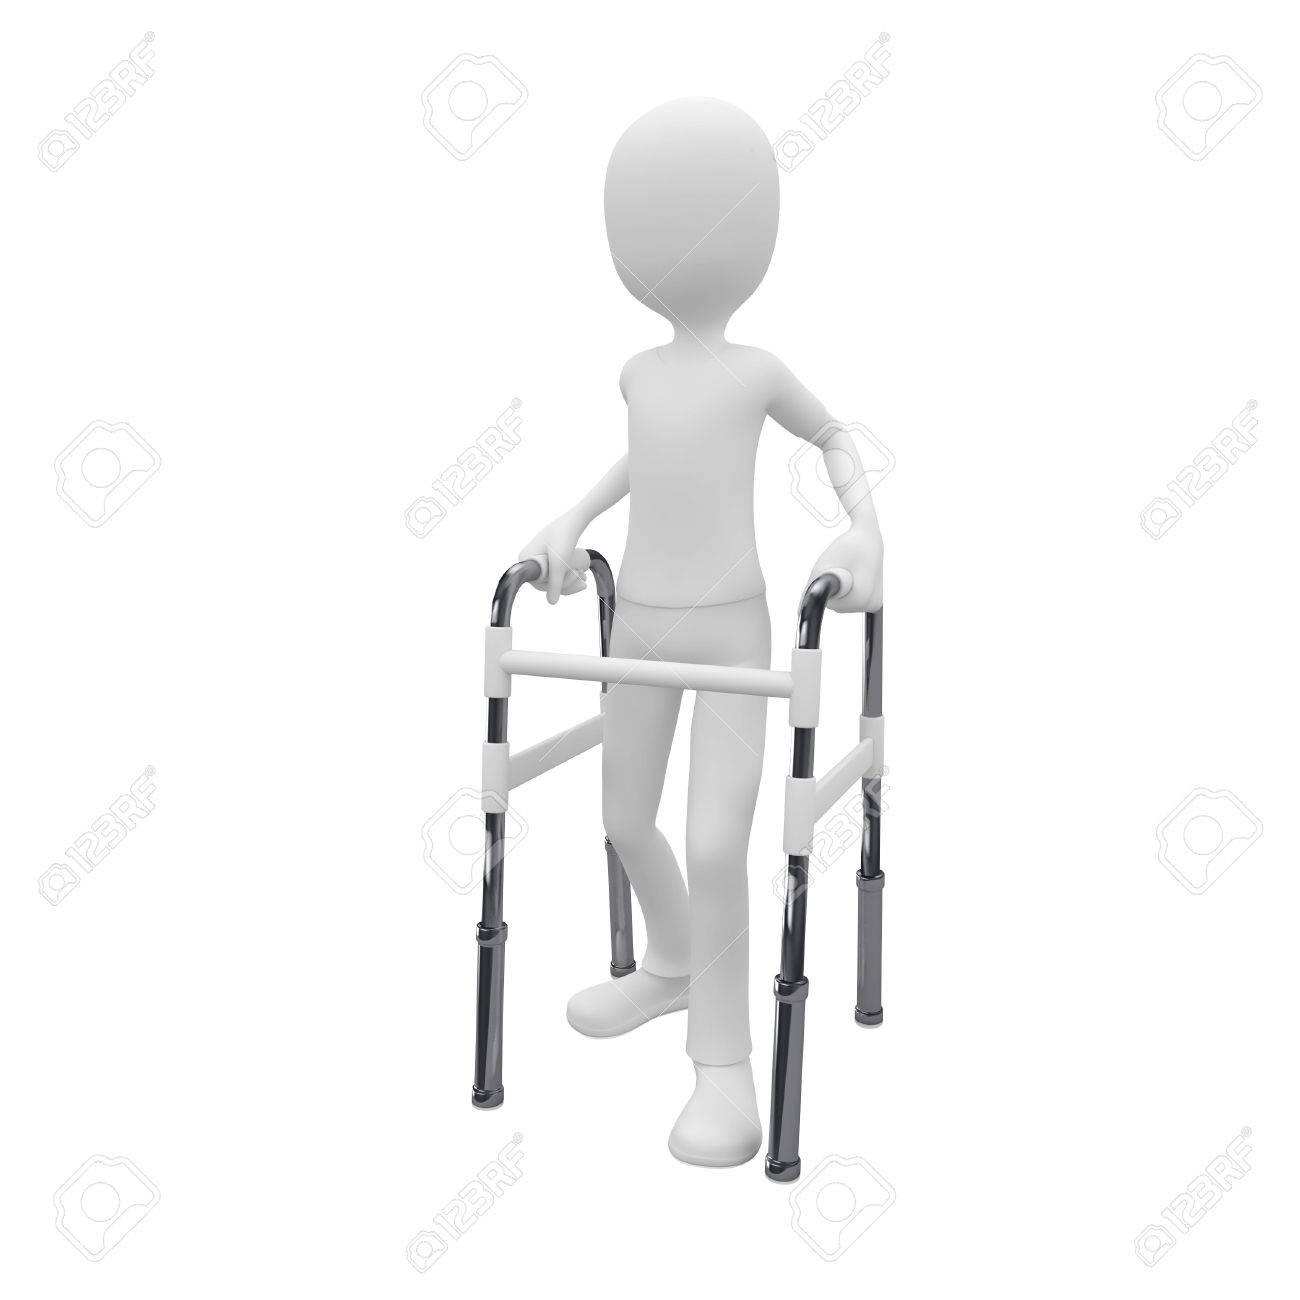 3d Man Using A Walking Frame As Walk Aid Stock Photo, Picture And ...